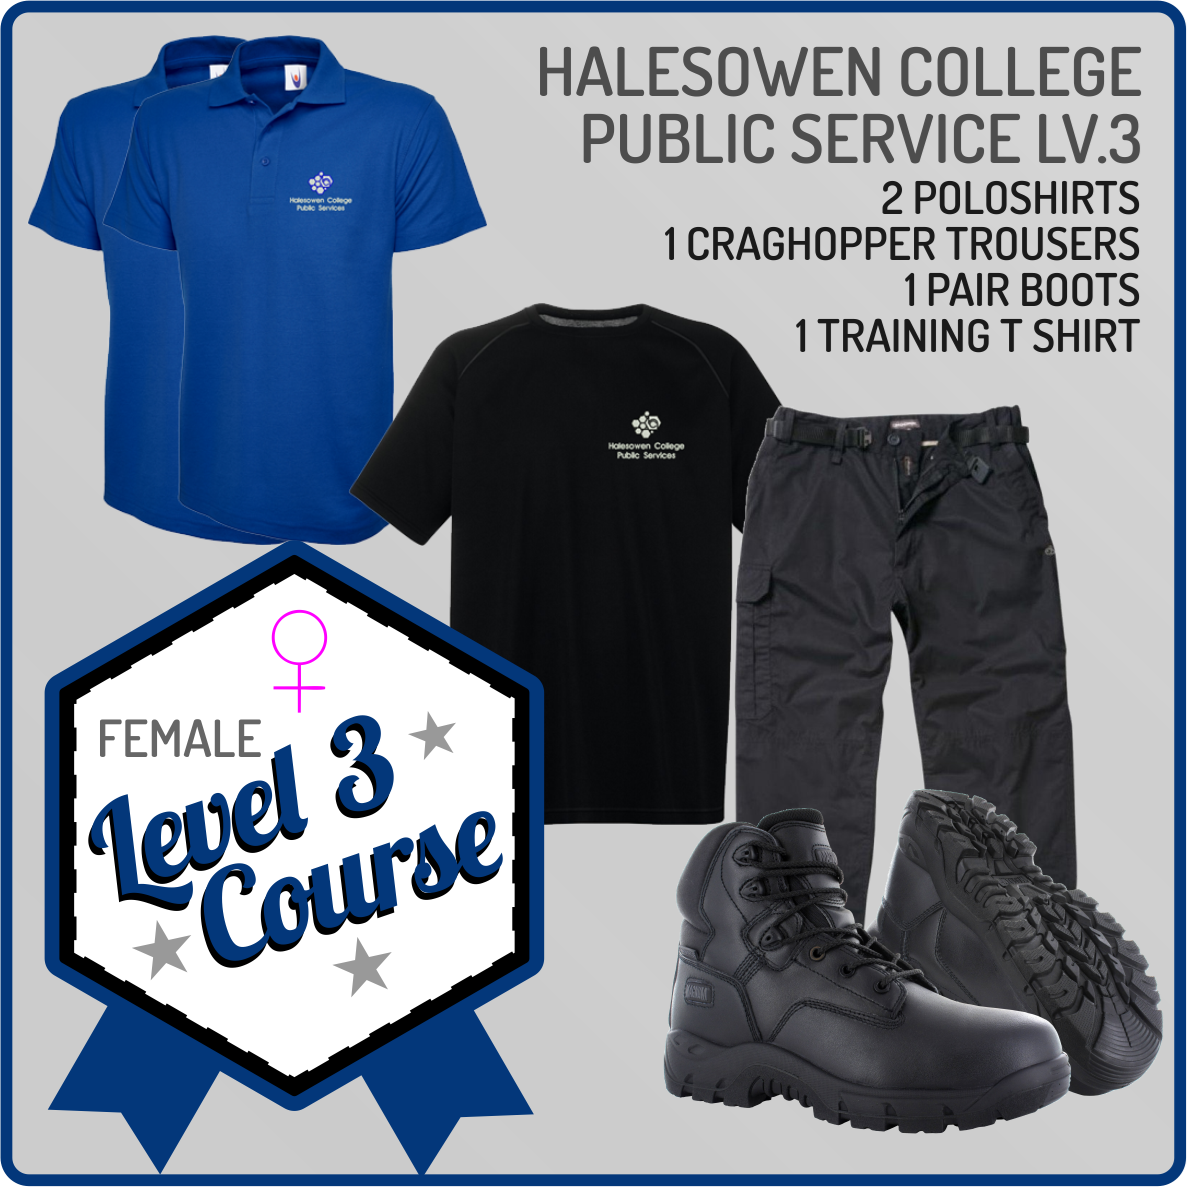 Complusary Female Uniform Set for Public Services Course Students - 1 Performance Jacket, 1 Craghoppers trousers, 2 Poloshirts, 1 Performance T Shirt and 1 pair of shoes.